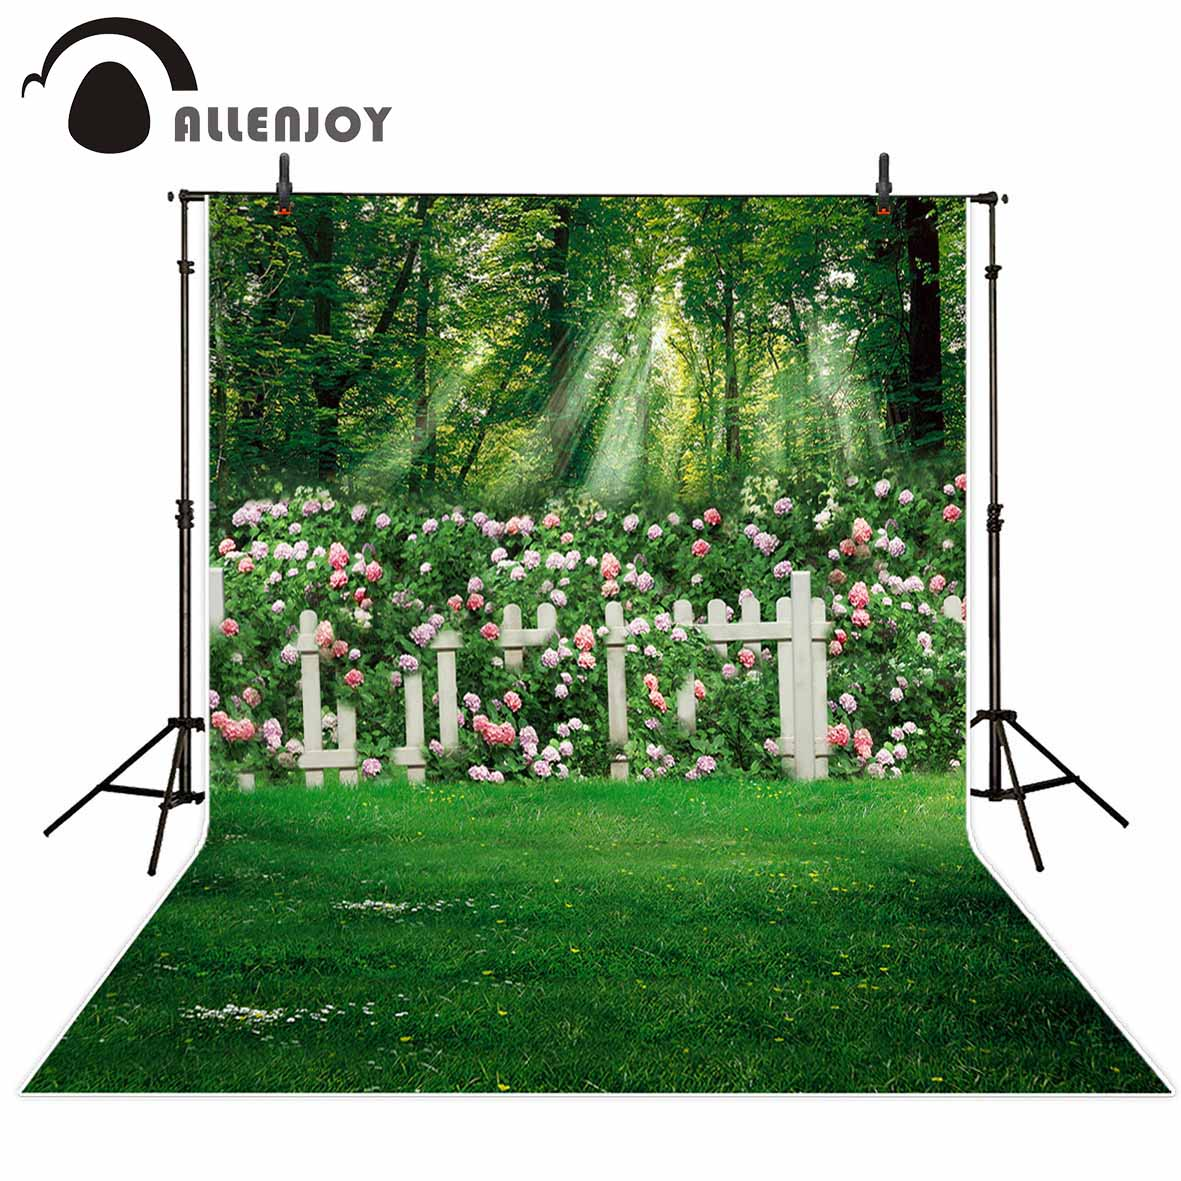 Allenjoy photography backdrop spring tree flower wedding sunshine background newborn photocall photobooth photo prop allenjoy photography backdrop flower door wedding children painting colorful background photo studio photocall photo shoot